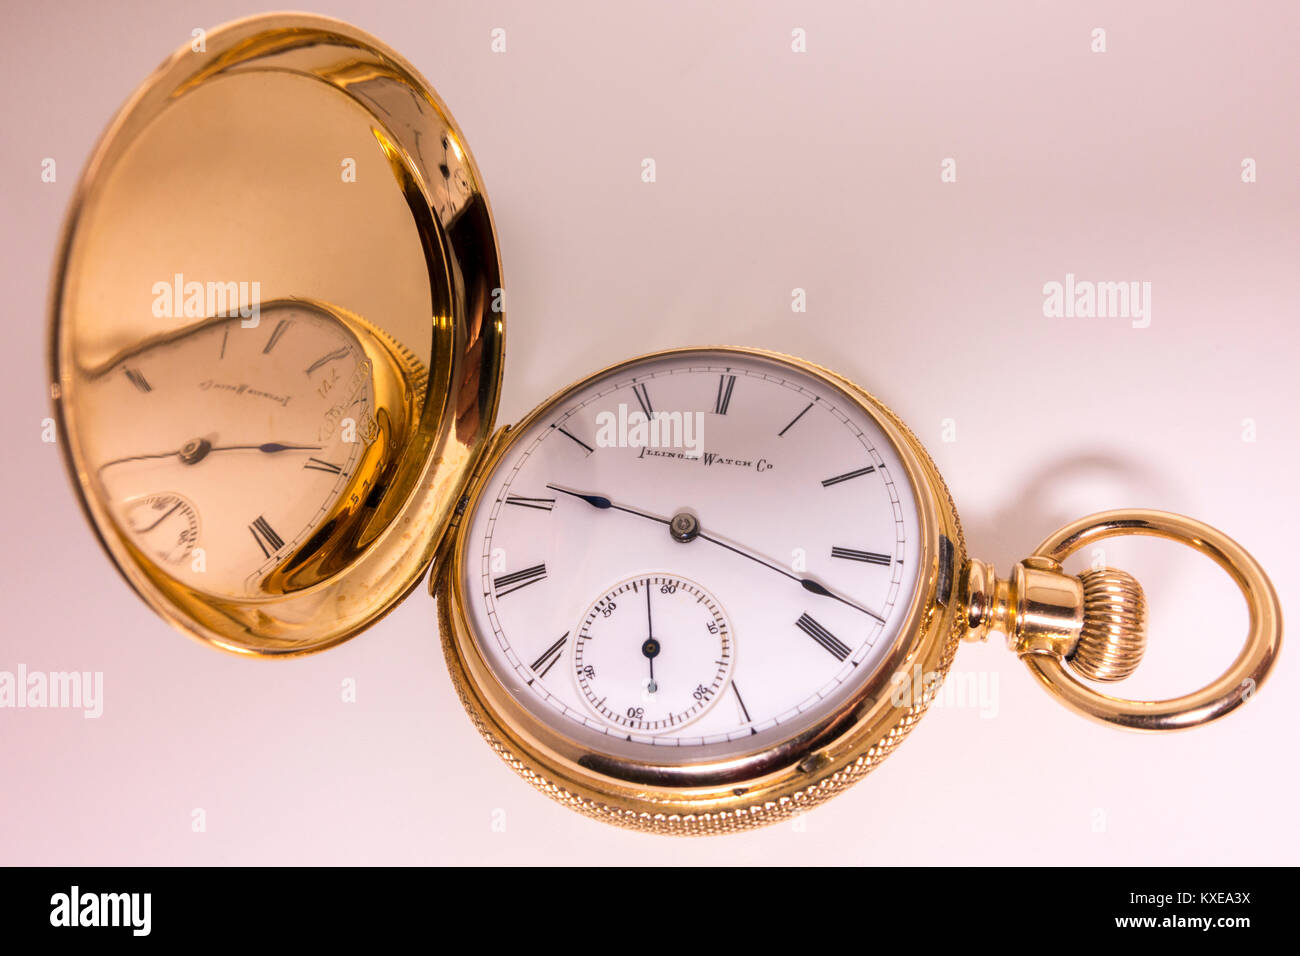 Solid gold pocket watch (14 karat), manufactured by the Illinois Watch Company in Springfield USA, late 1800s. Ladies' - Stock Image